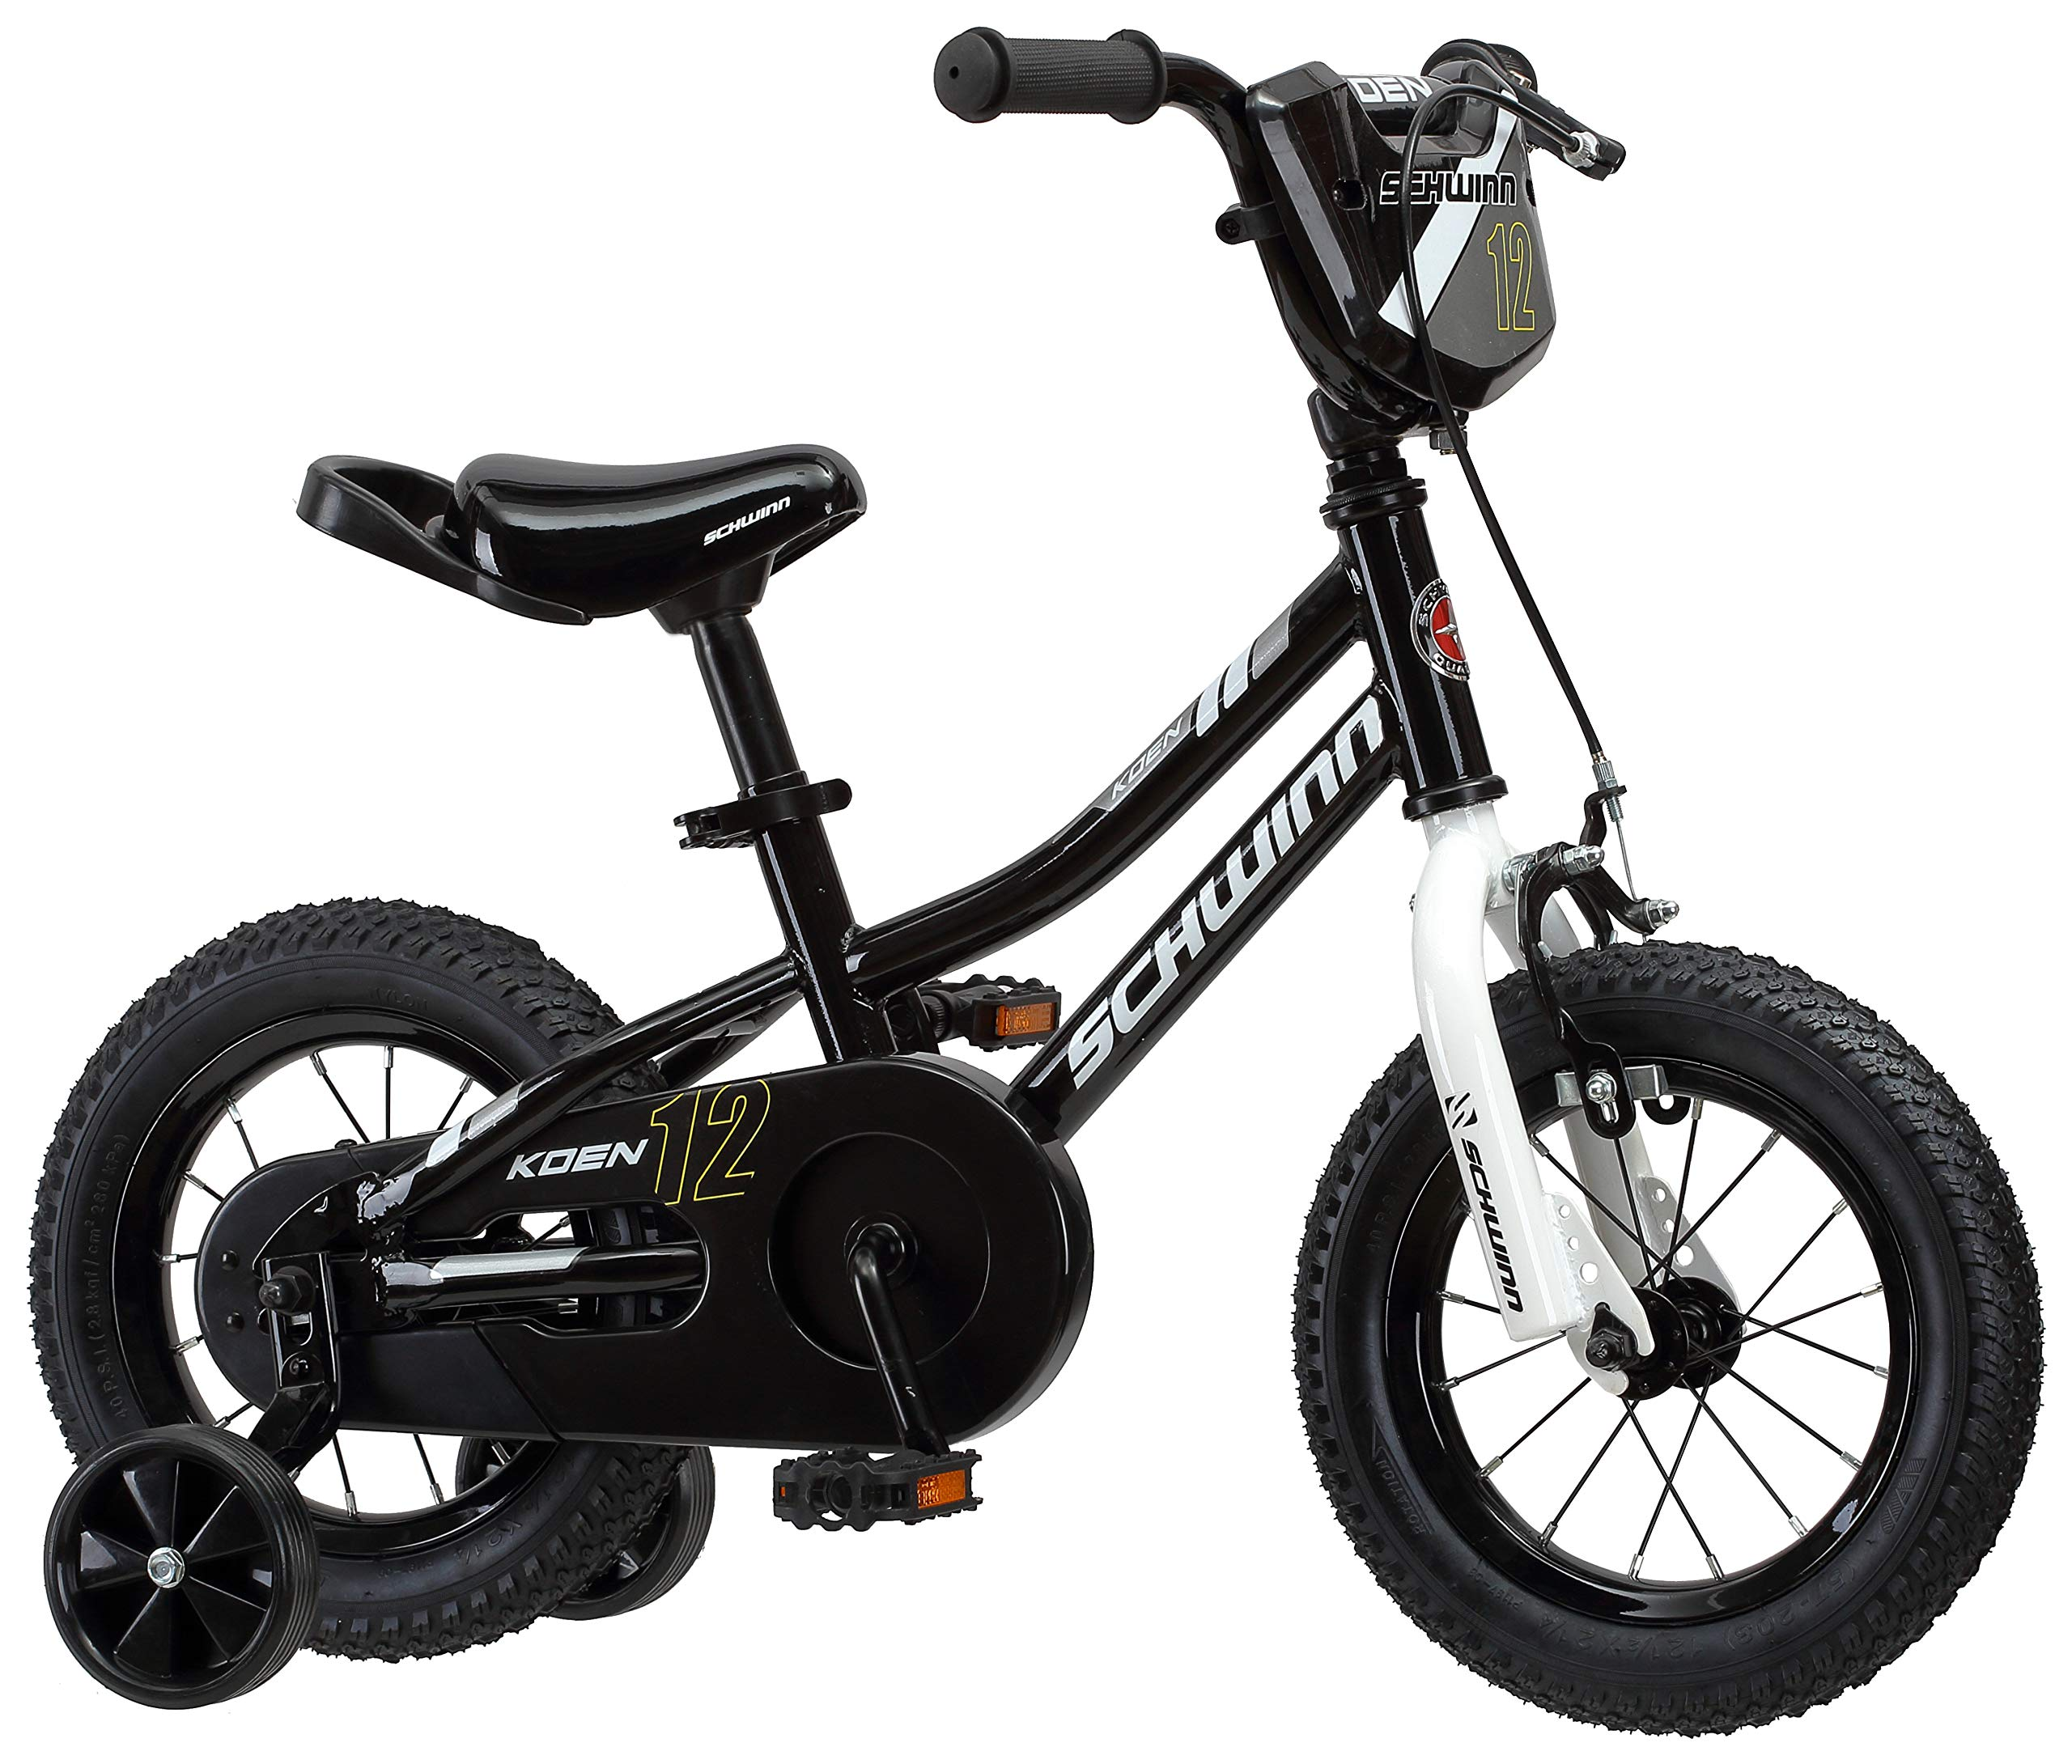 Schwinn Koen Boys Bike For Toddlers And Kids Fifth Degree